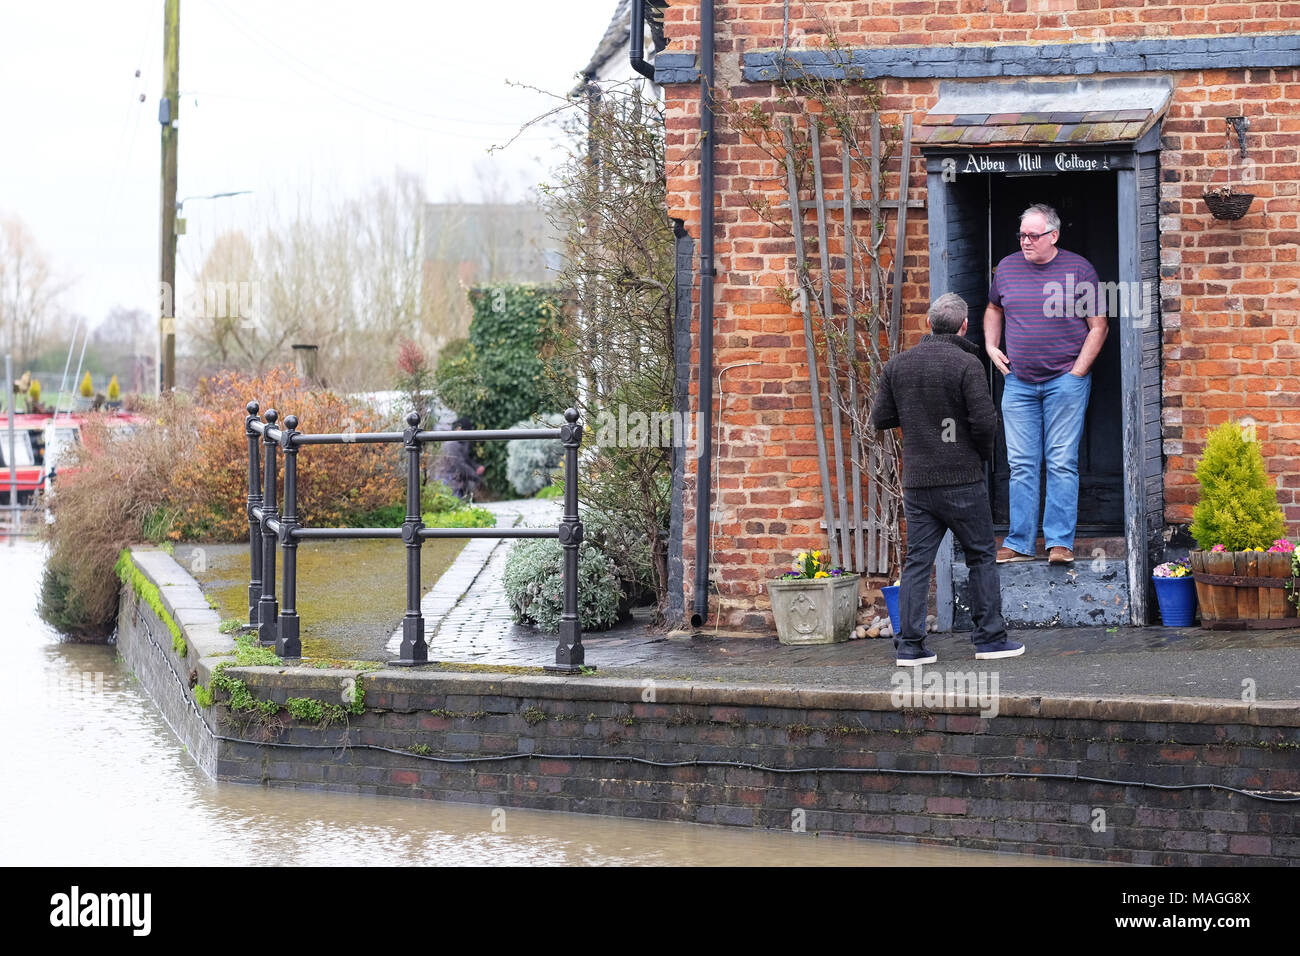 Tewkesbury, Gloucestershire - Bank Holiday Monday 2nd April 2018 - UK Weather: Local residents watch as water levels rise outside their riverside homes in Tewkesbury - the flooding at the confluence of the River Severn and the River Avon has already covered the lane beside the rivers - Photo Steven May  / Alamy Live News Stock Photo